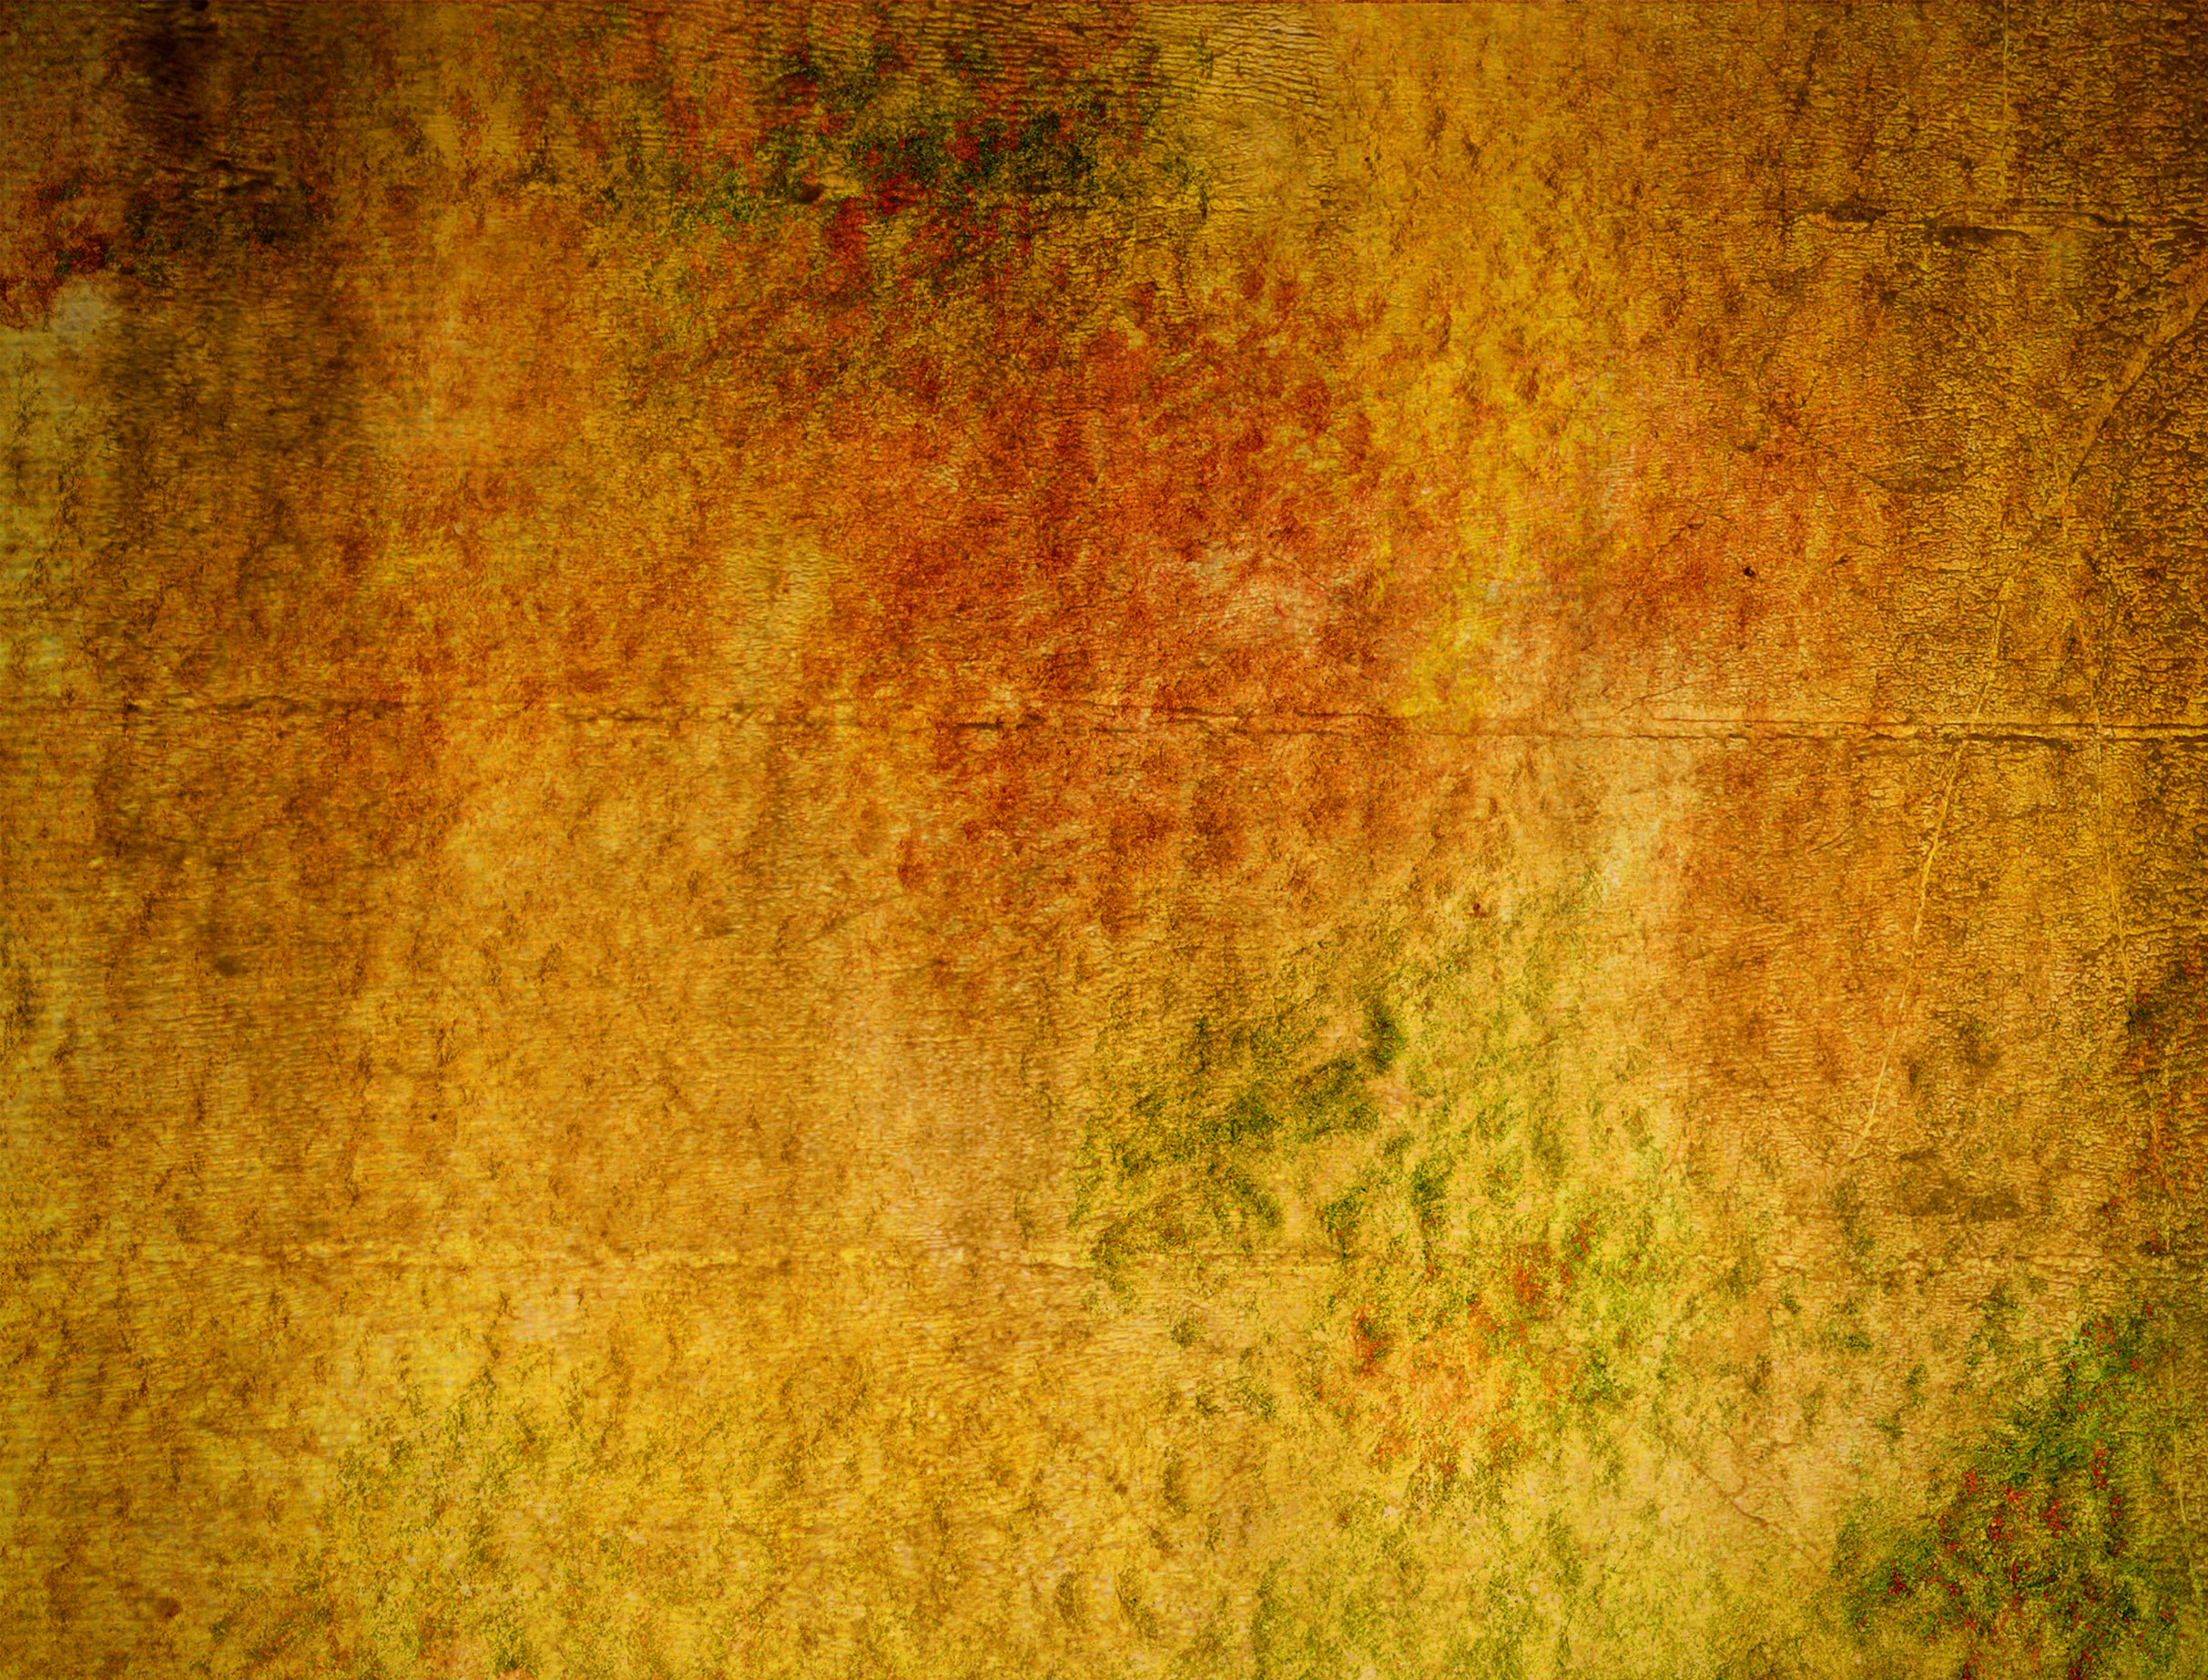 Old tainted leather - abstract texture background photo